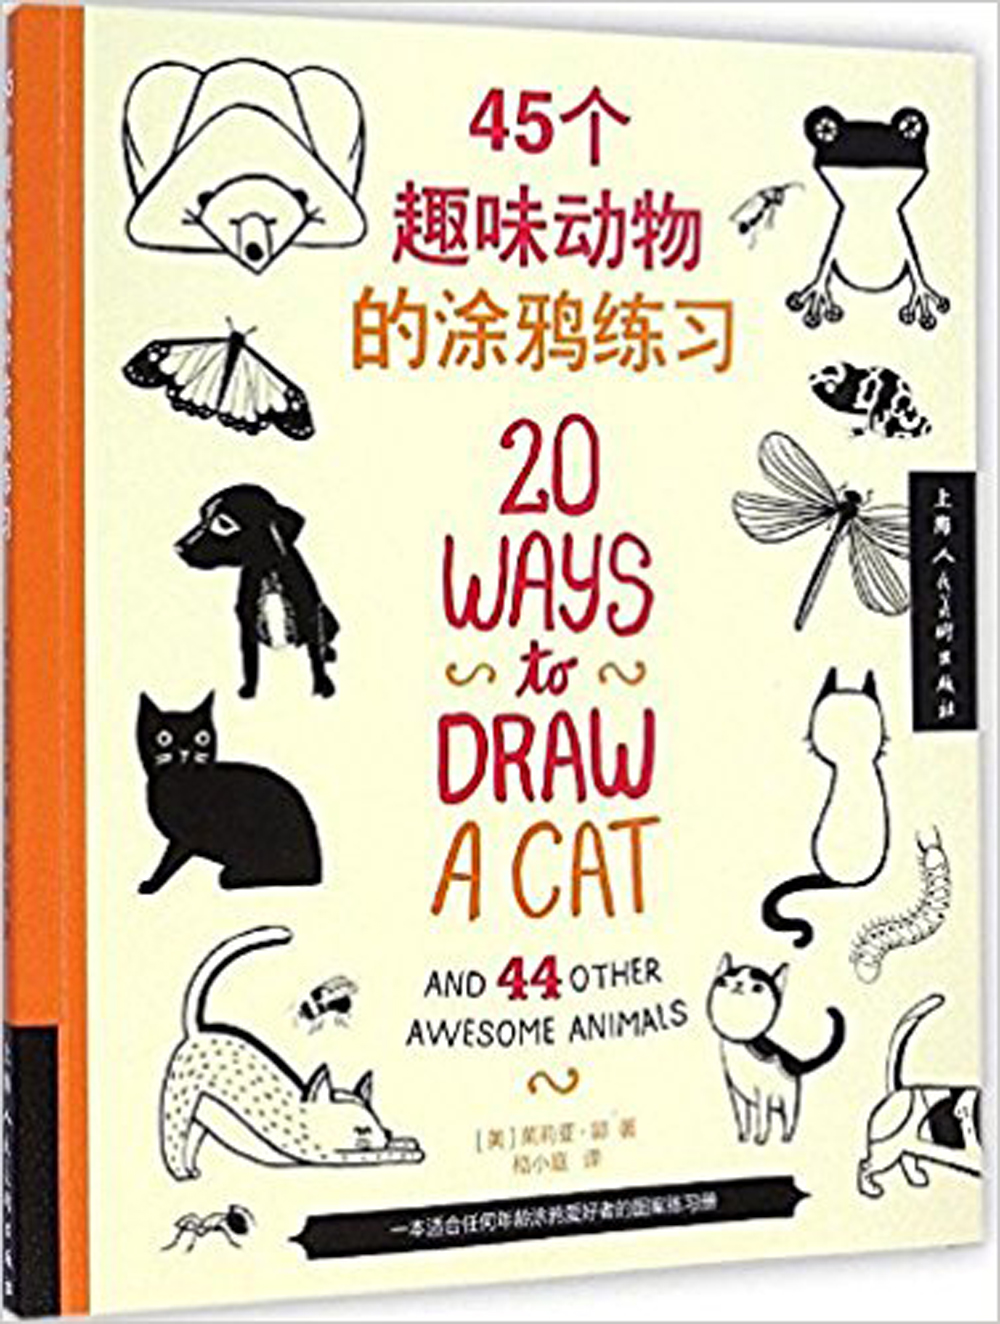 20 Ways to Draw a Cat and 44 Other Awesome Animals children Colouring Book Painting Drawing Book